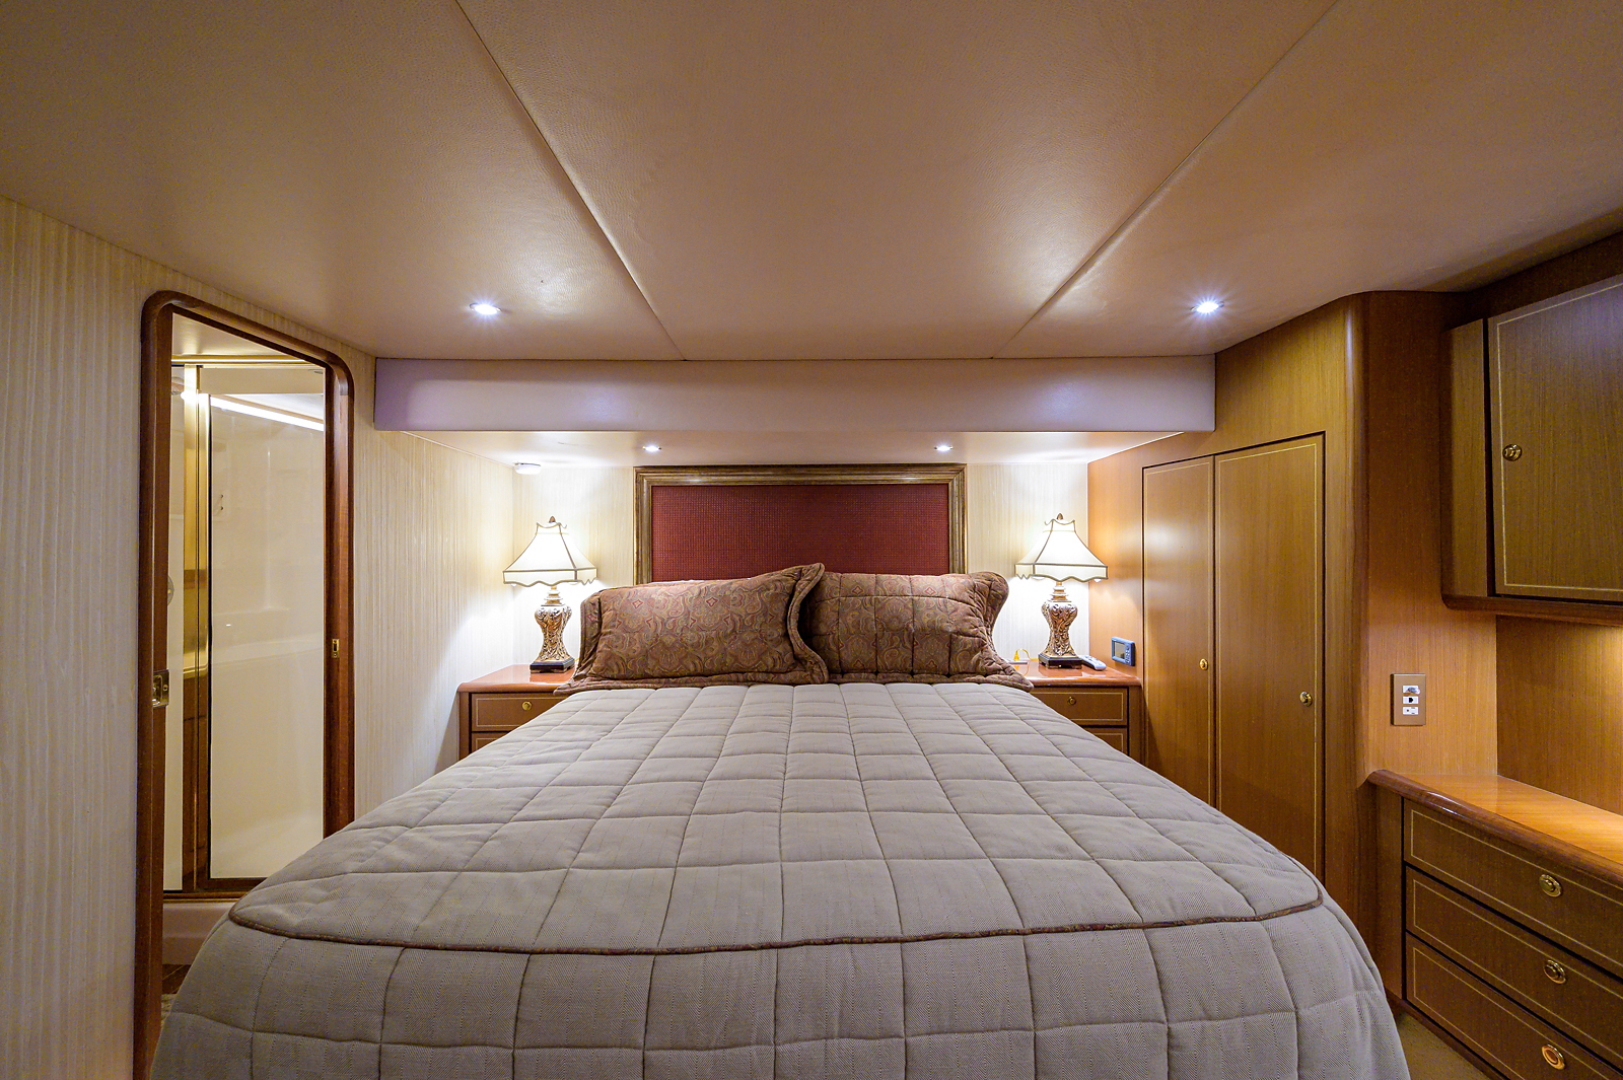 Ocean Yachts-Odyssey 2005-MISS JAN Palm Beach Gardens-Florida-United States-Master Stateroom-1386899 | Thumbnail